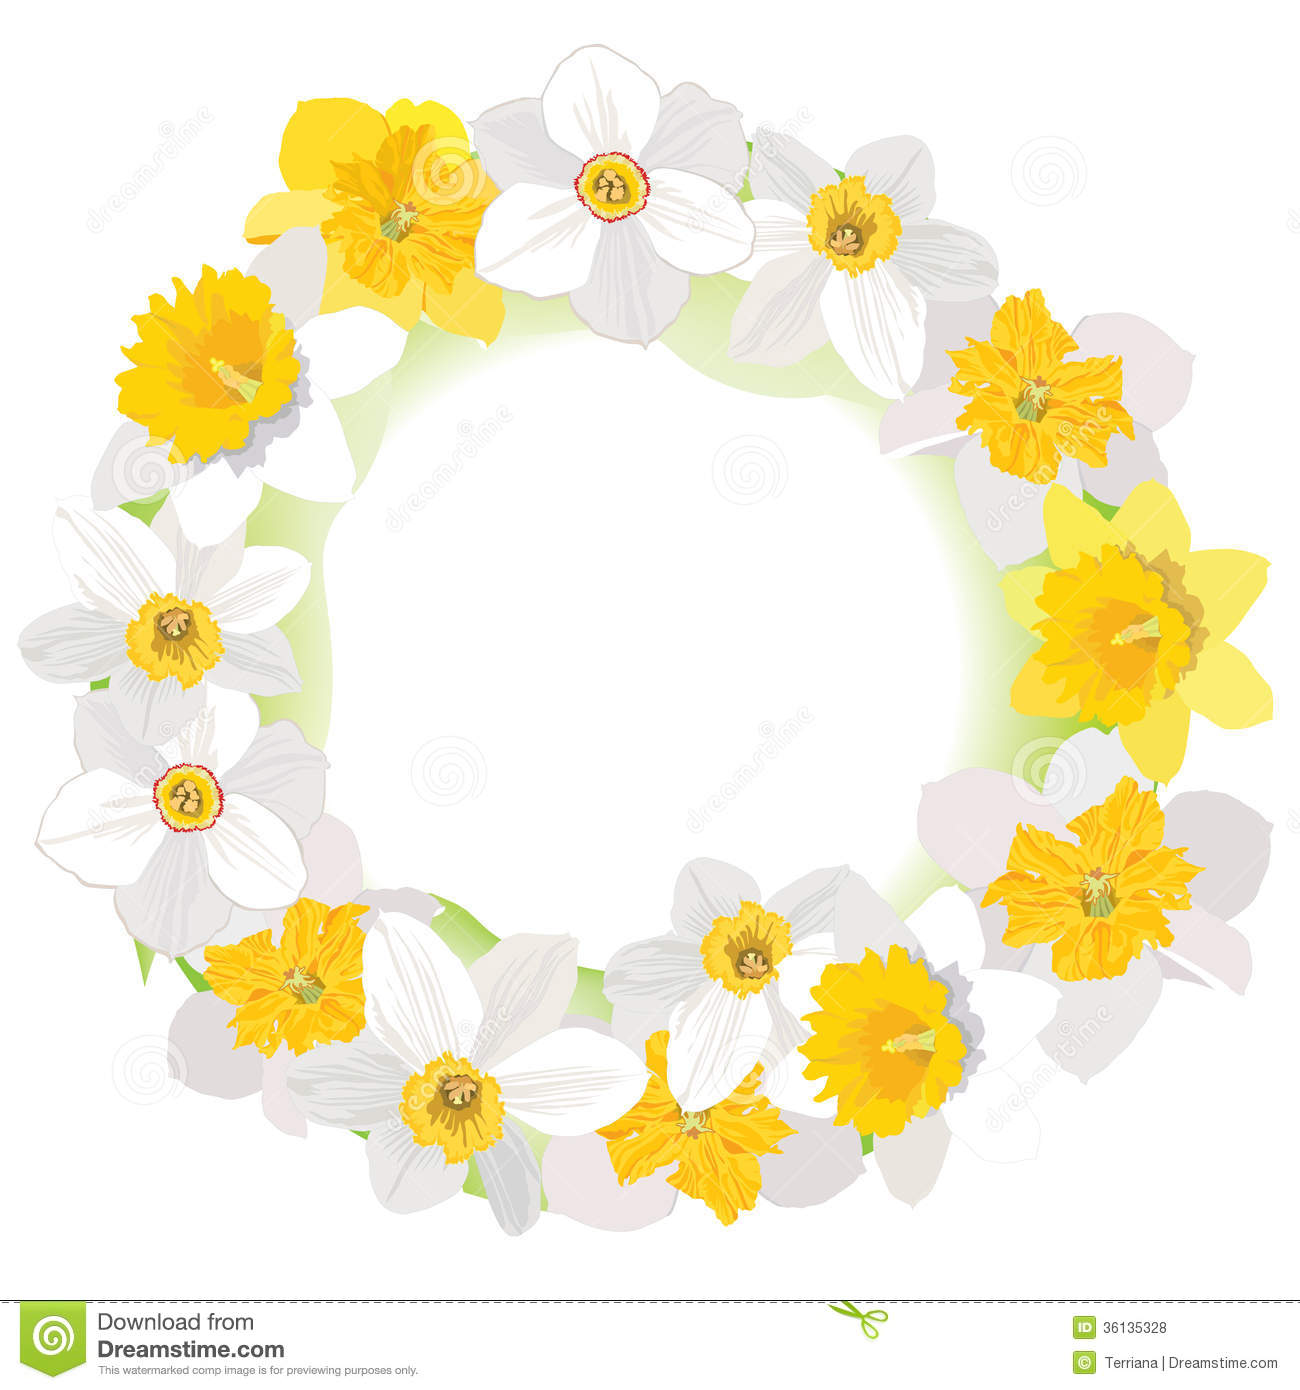 decoracao quadro branco:Yellow and White Daffodil Flower